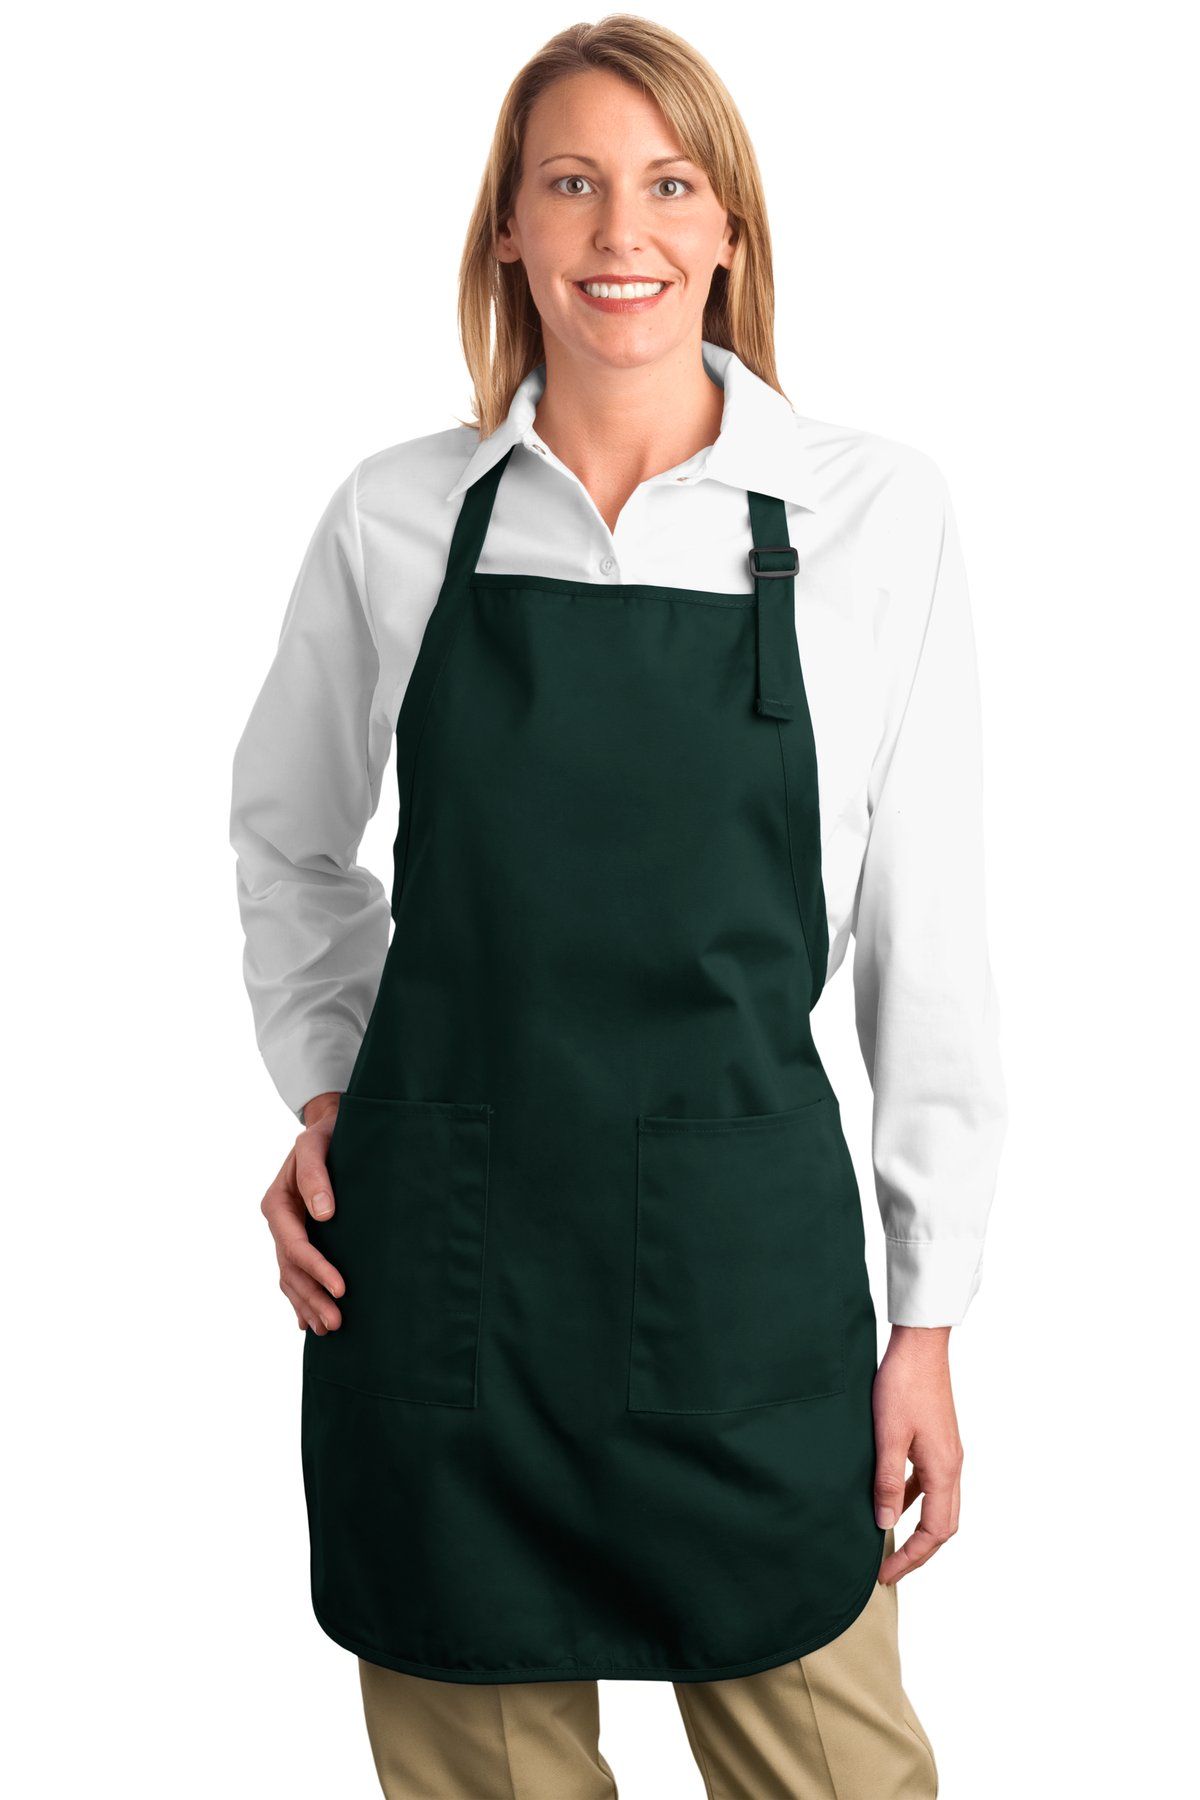 Port Authority ®  Full-Length Apron with Pockets.  A500 - Hunter